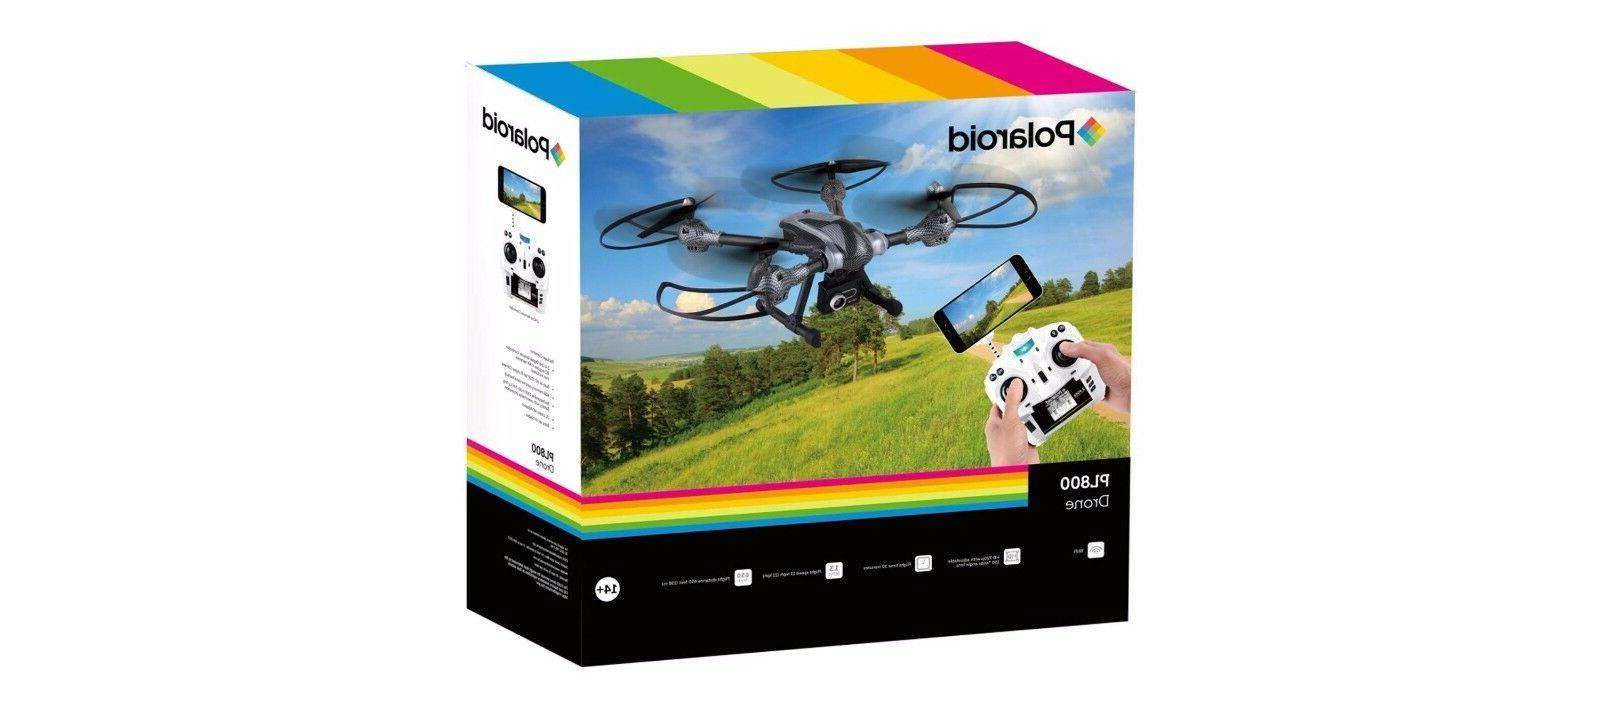 hd720p wi fi camera drone with adjustable